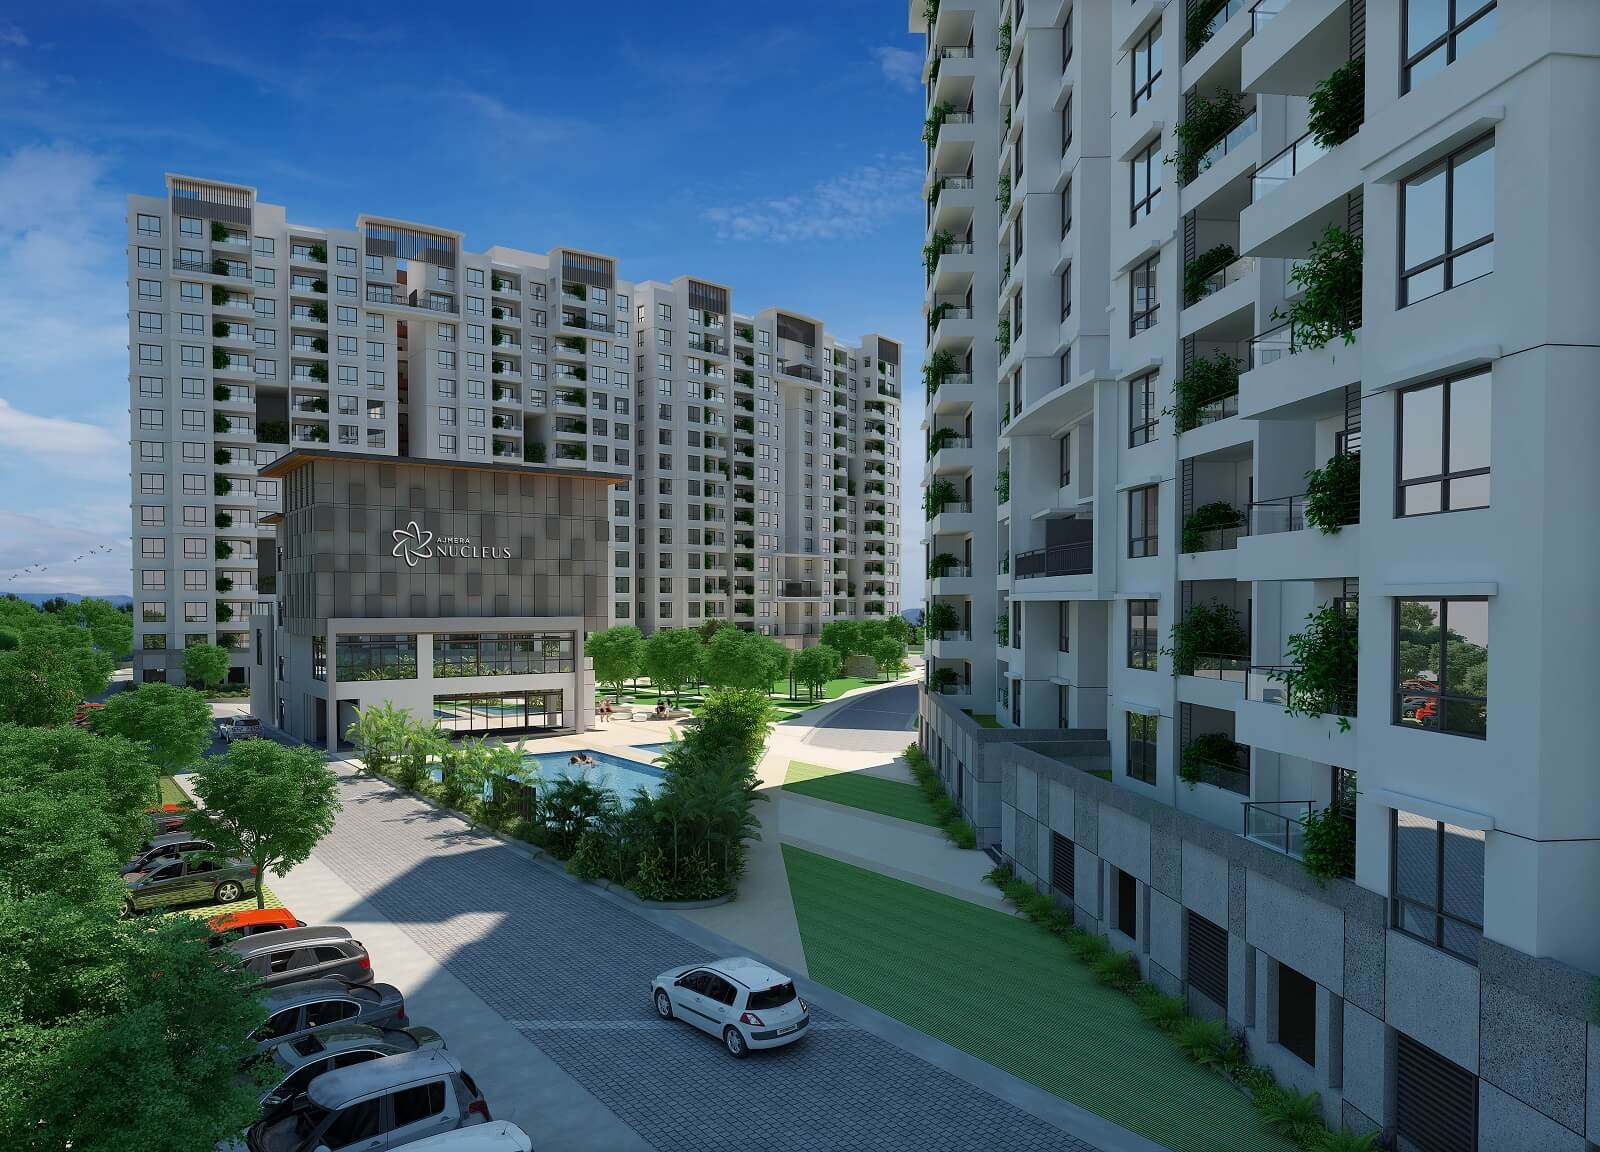 How Electronic City in Bangalore is Booming After the Improved Infrastructure?